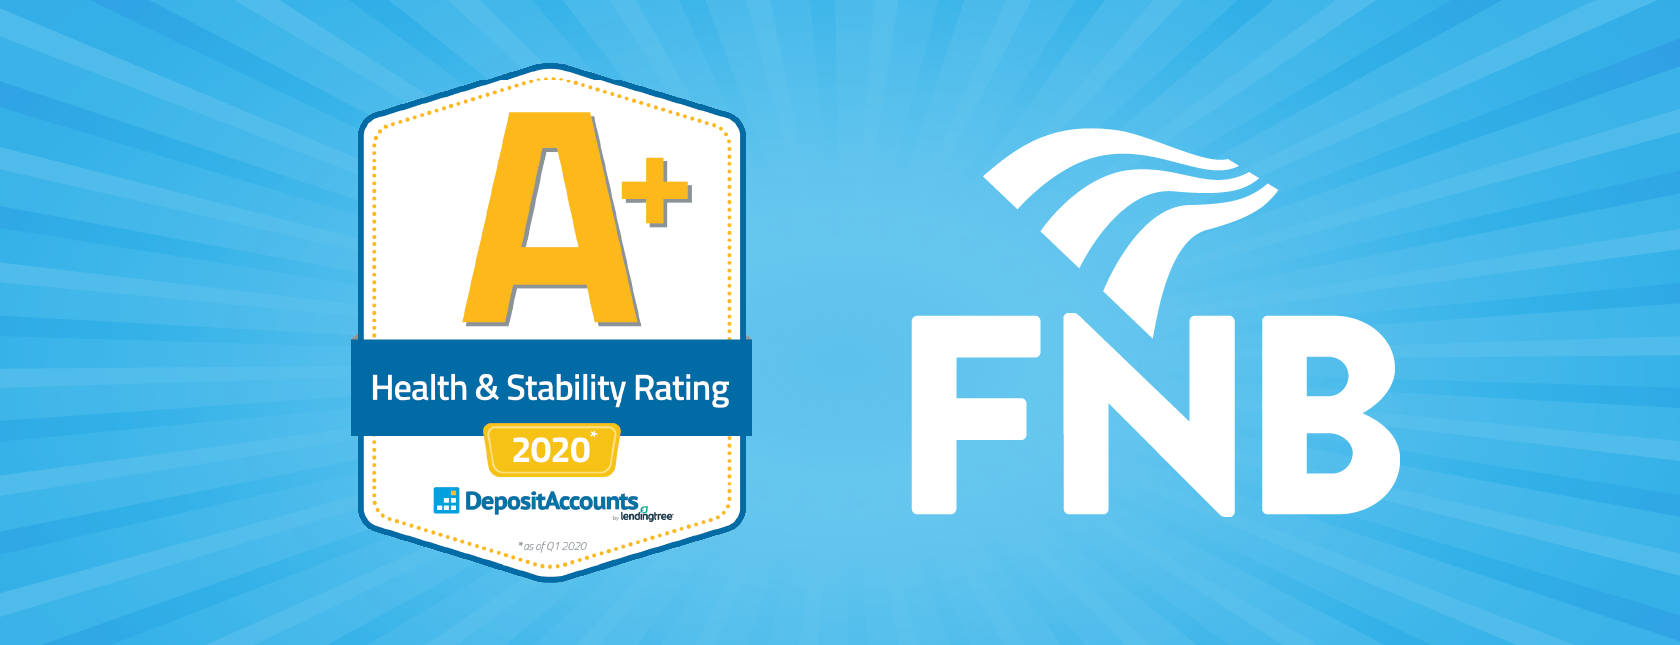 FNB-earns-A+-Health-Rating